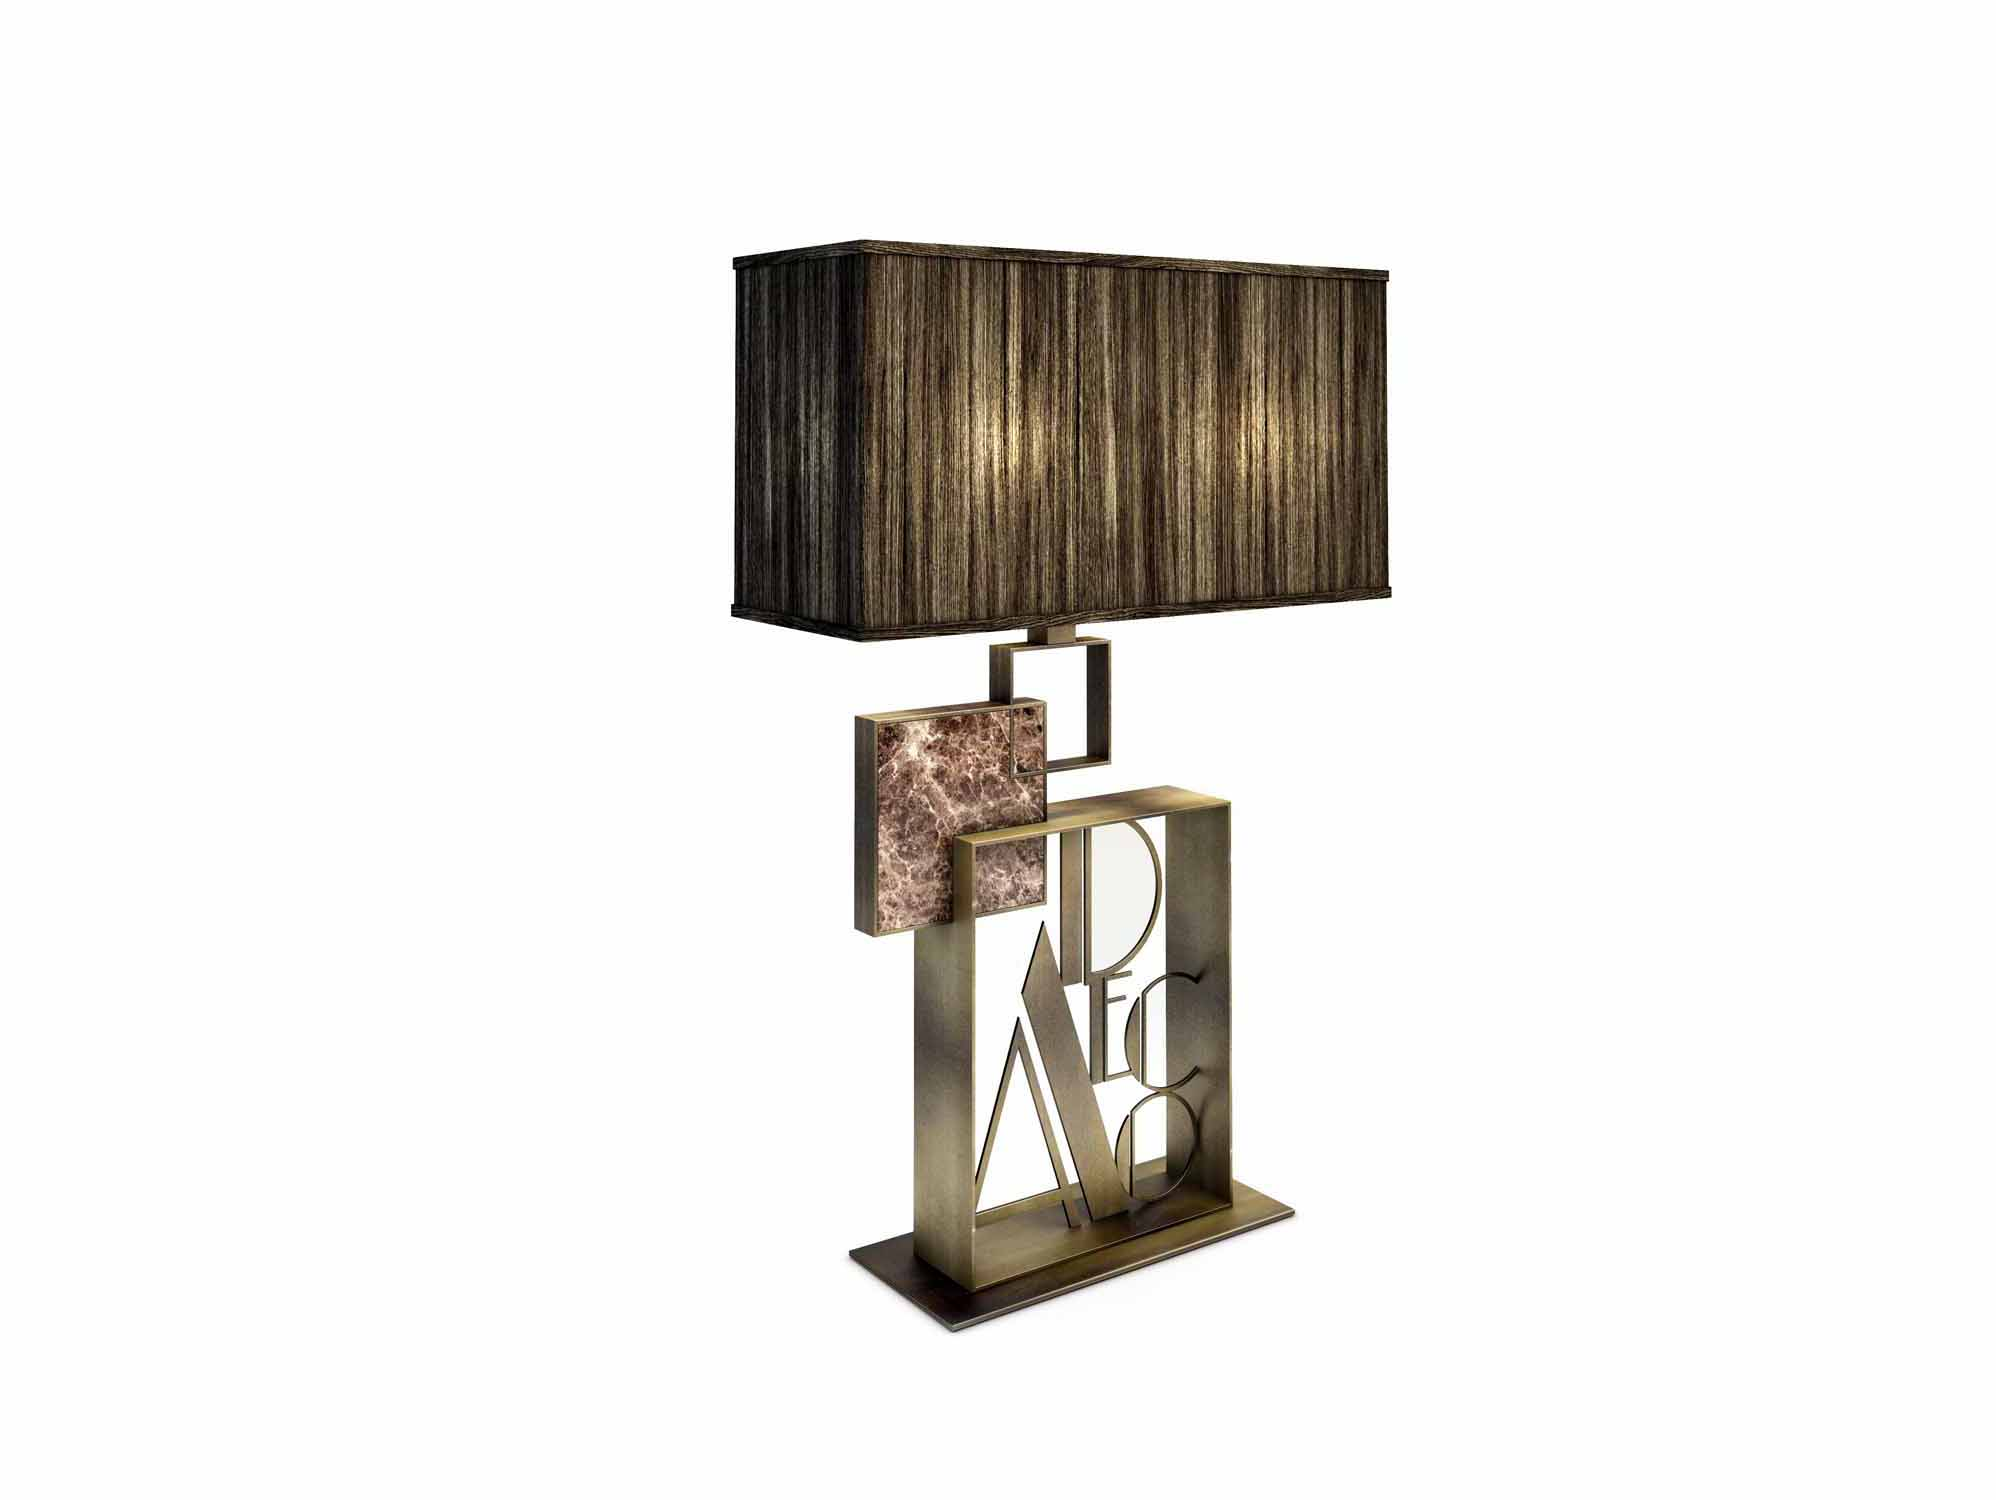 A DECO TABLE LAMP